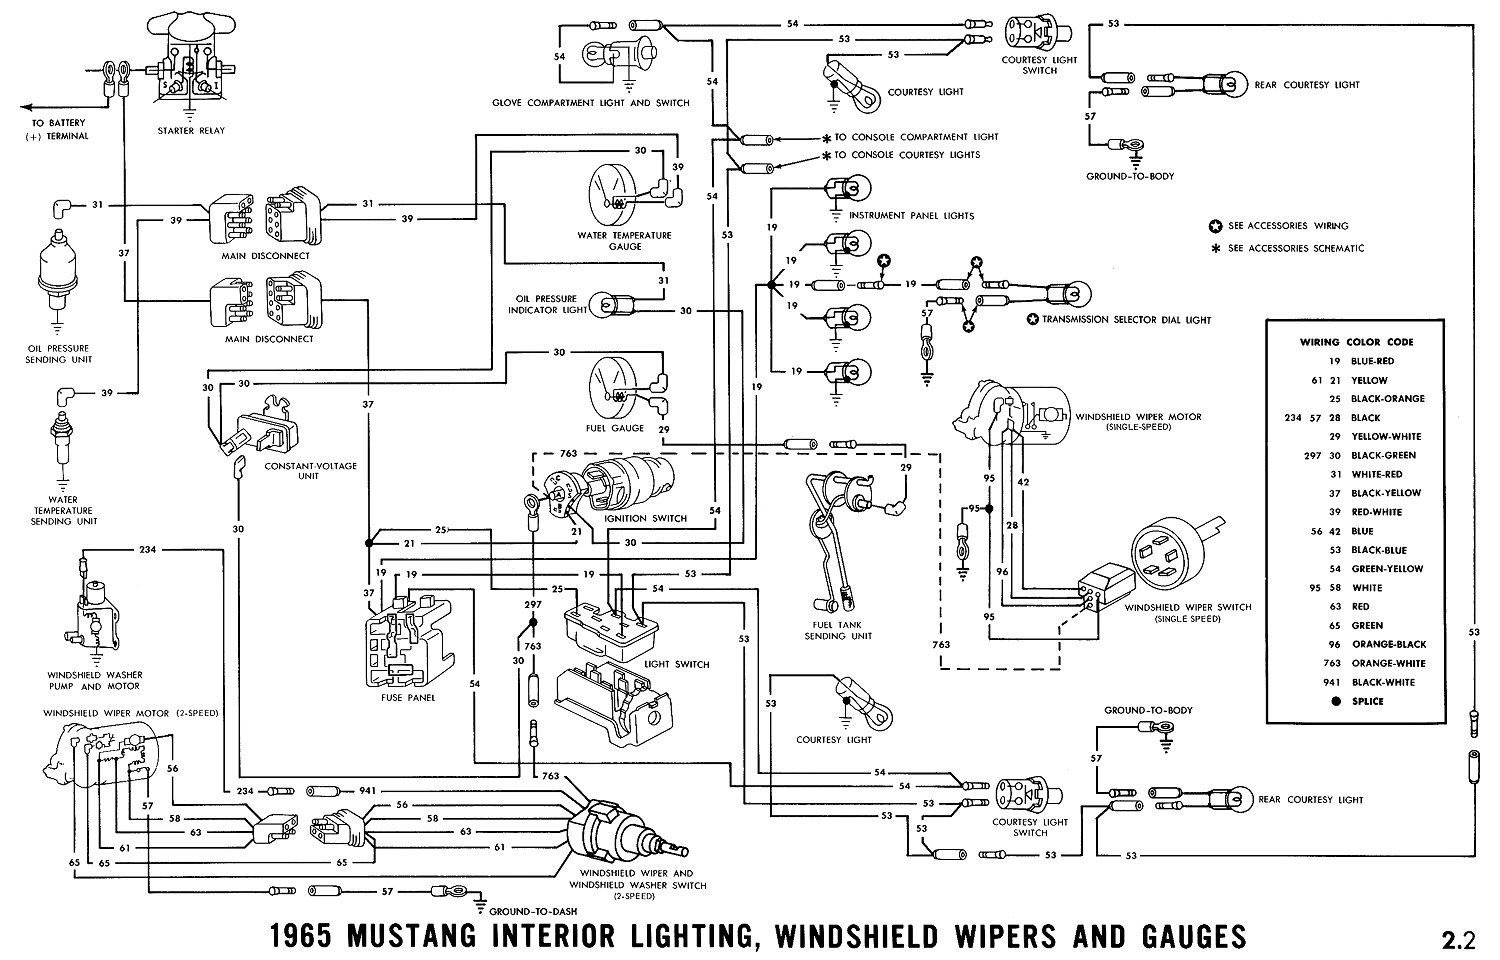 68 Ford Mustang Radio Wiring Data Diagram Temp Gauge 1965 Diagrams Average Joe Restoration 98